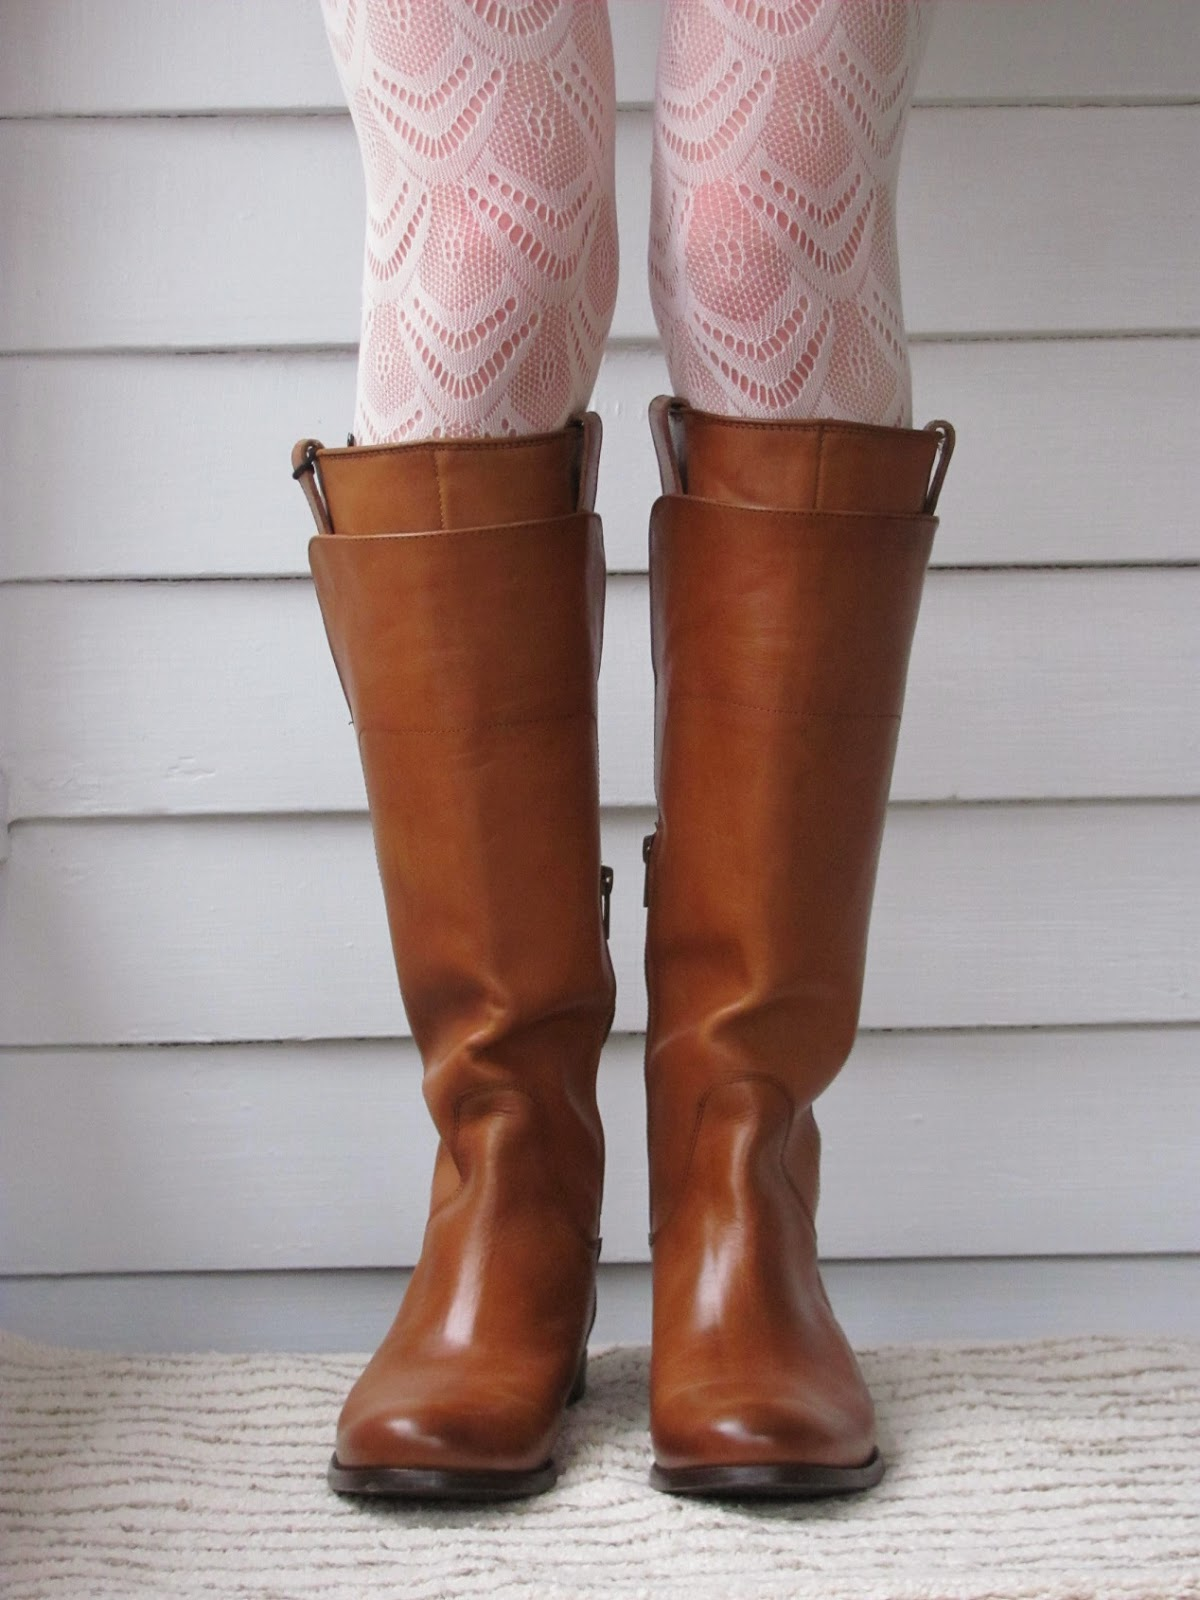 Howdy Slim Riding Boots For Thin Calves March 2014